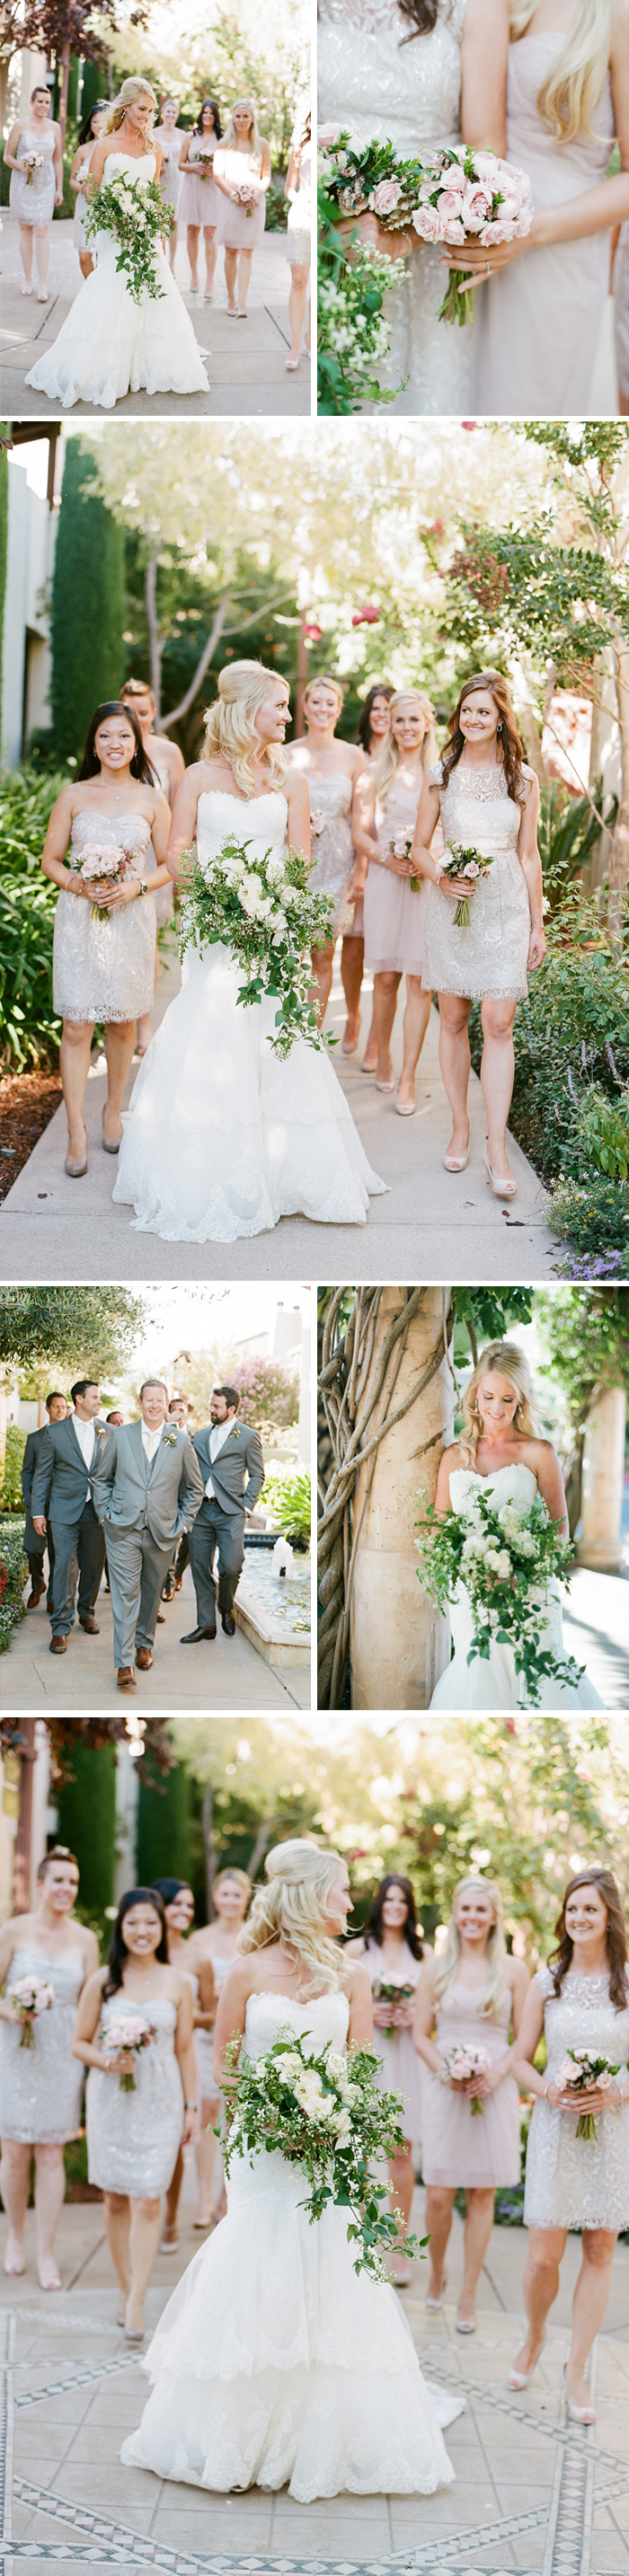 Bridal party shoot before the ceremony, a soft blush palette for the bridesmaids' dresses and bouquets, charcoal suits for the groomsmen; photo by Sylvie Gil